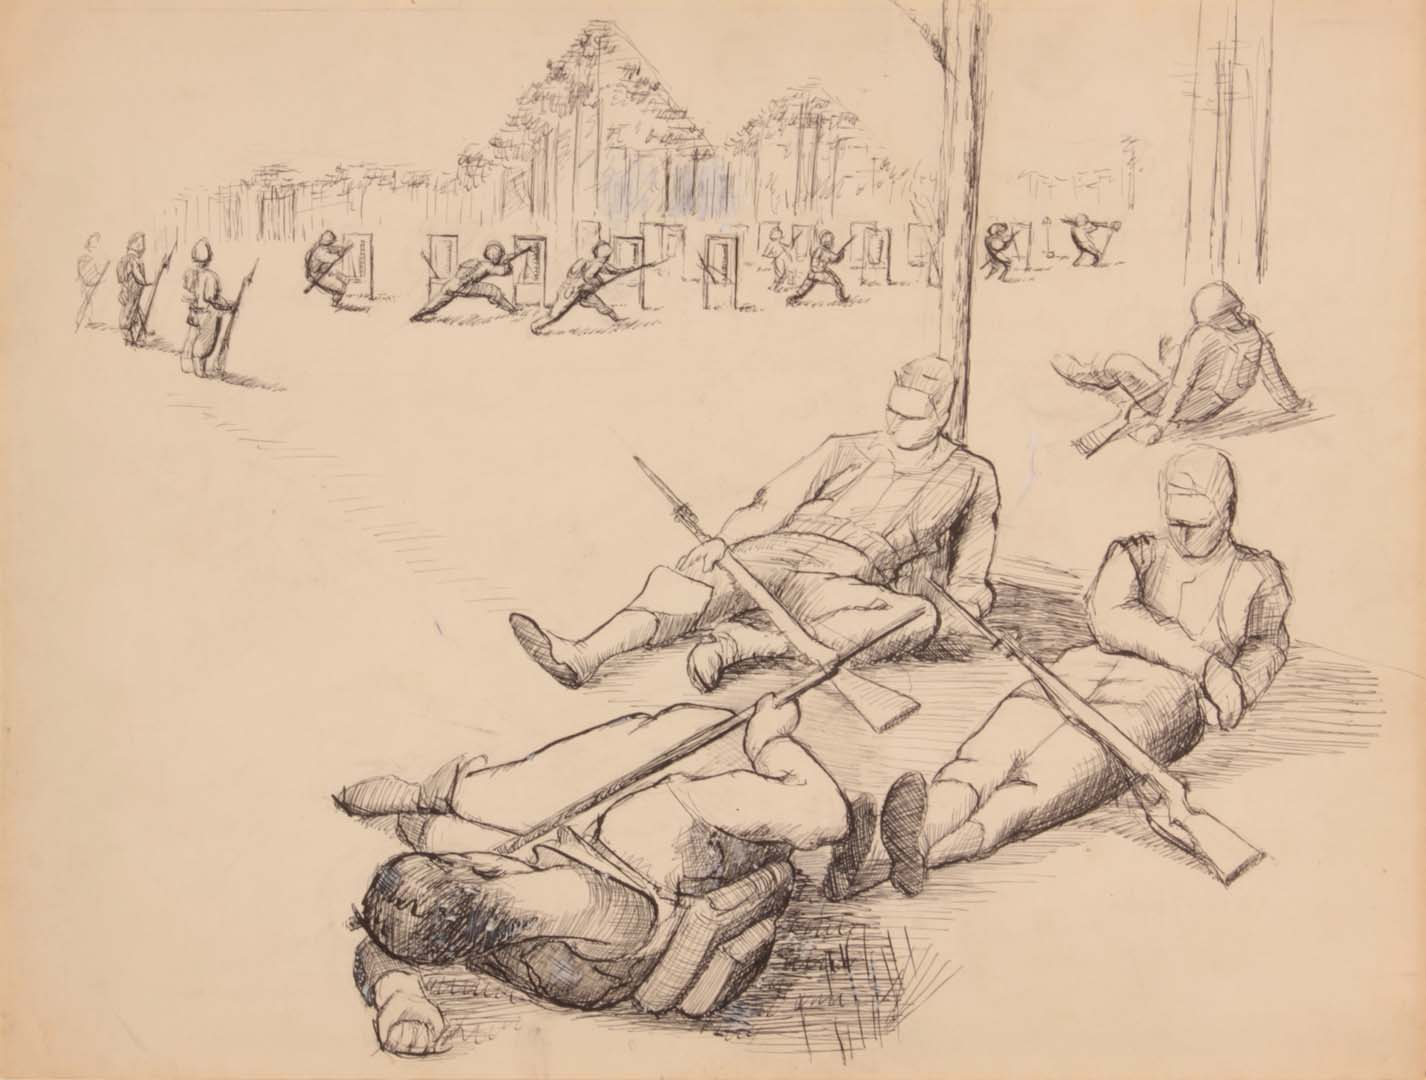 1944 Soldiers Resting (Study for Bayonet Practice) Pen and Ink on Paper 10.6875 x 13.9375